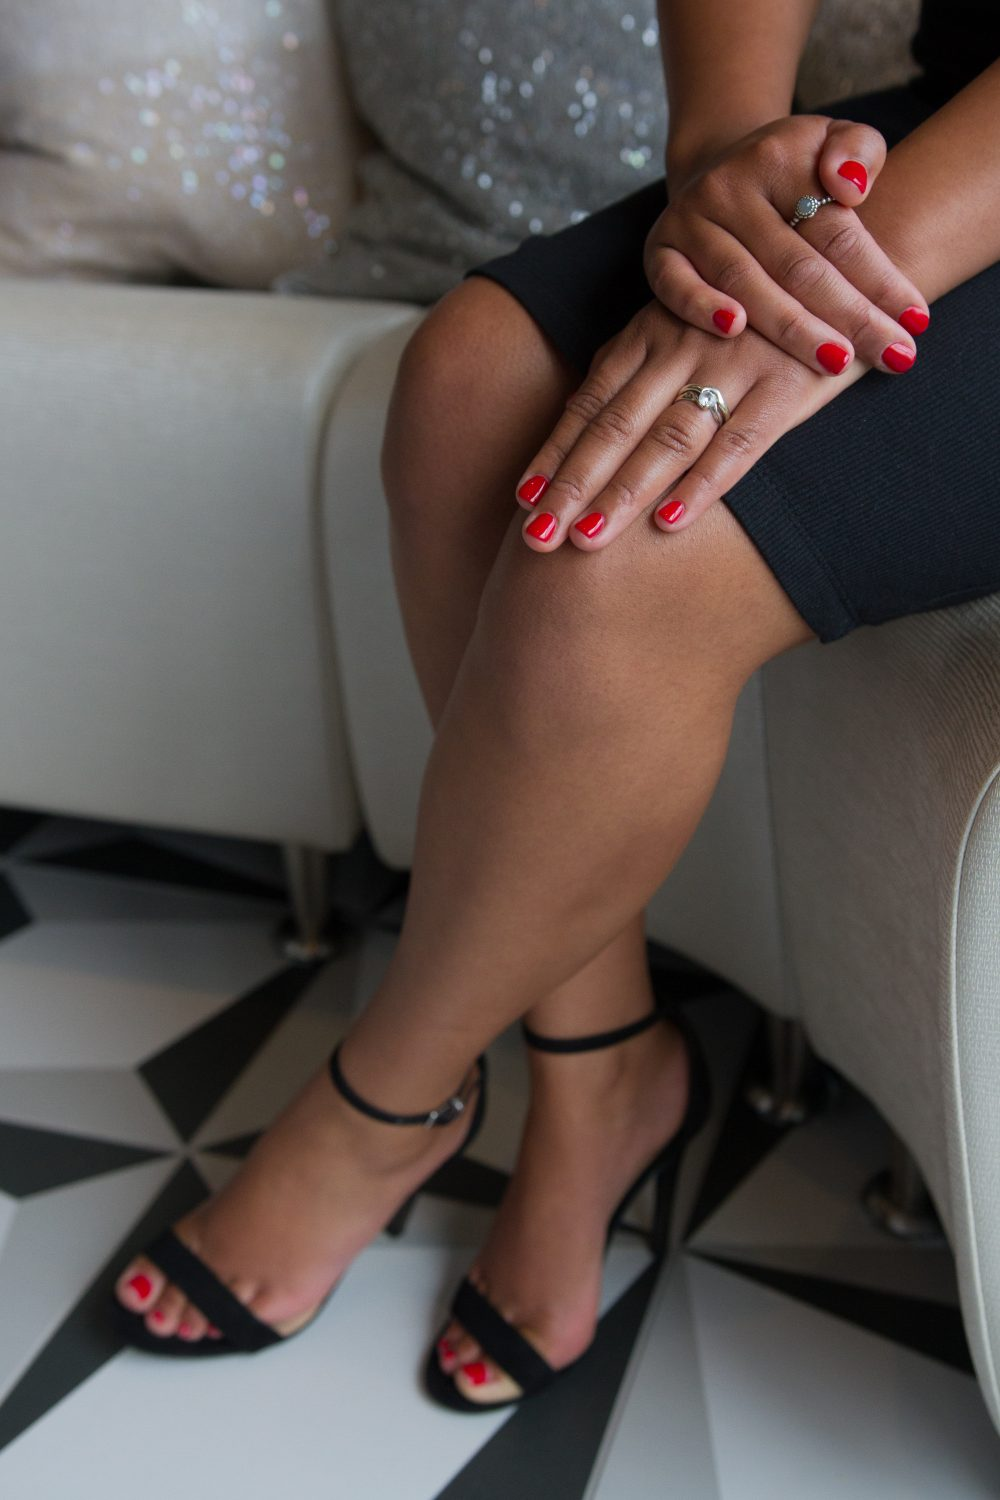 a client with matching red gel manicure and pedicure